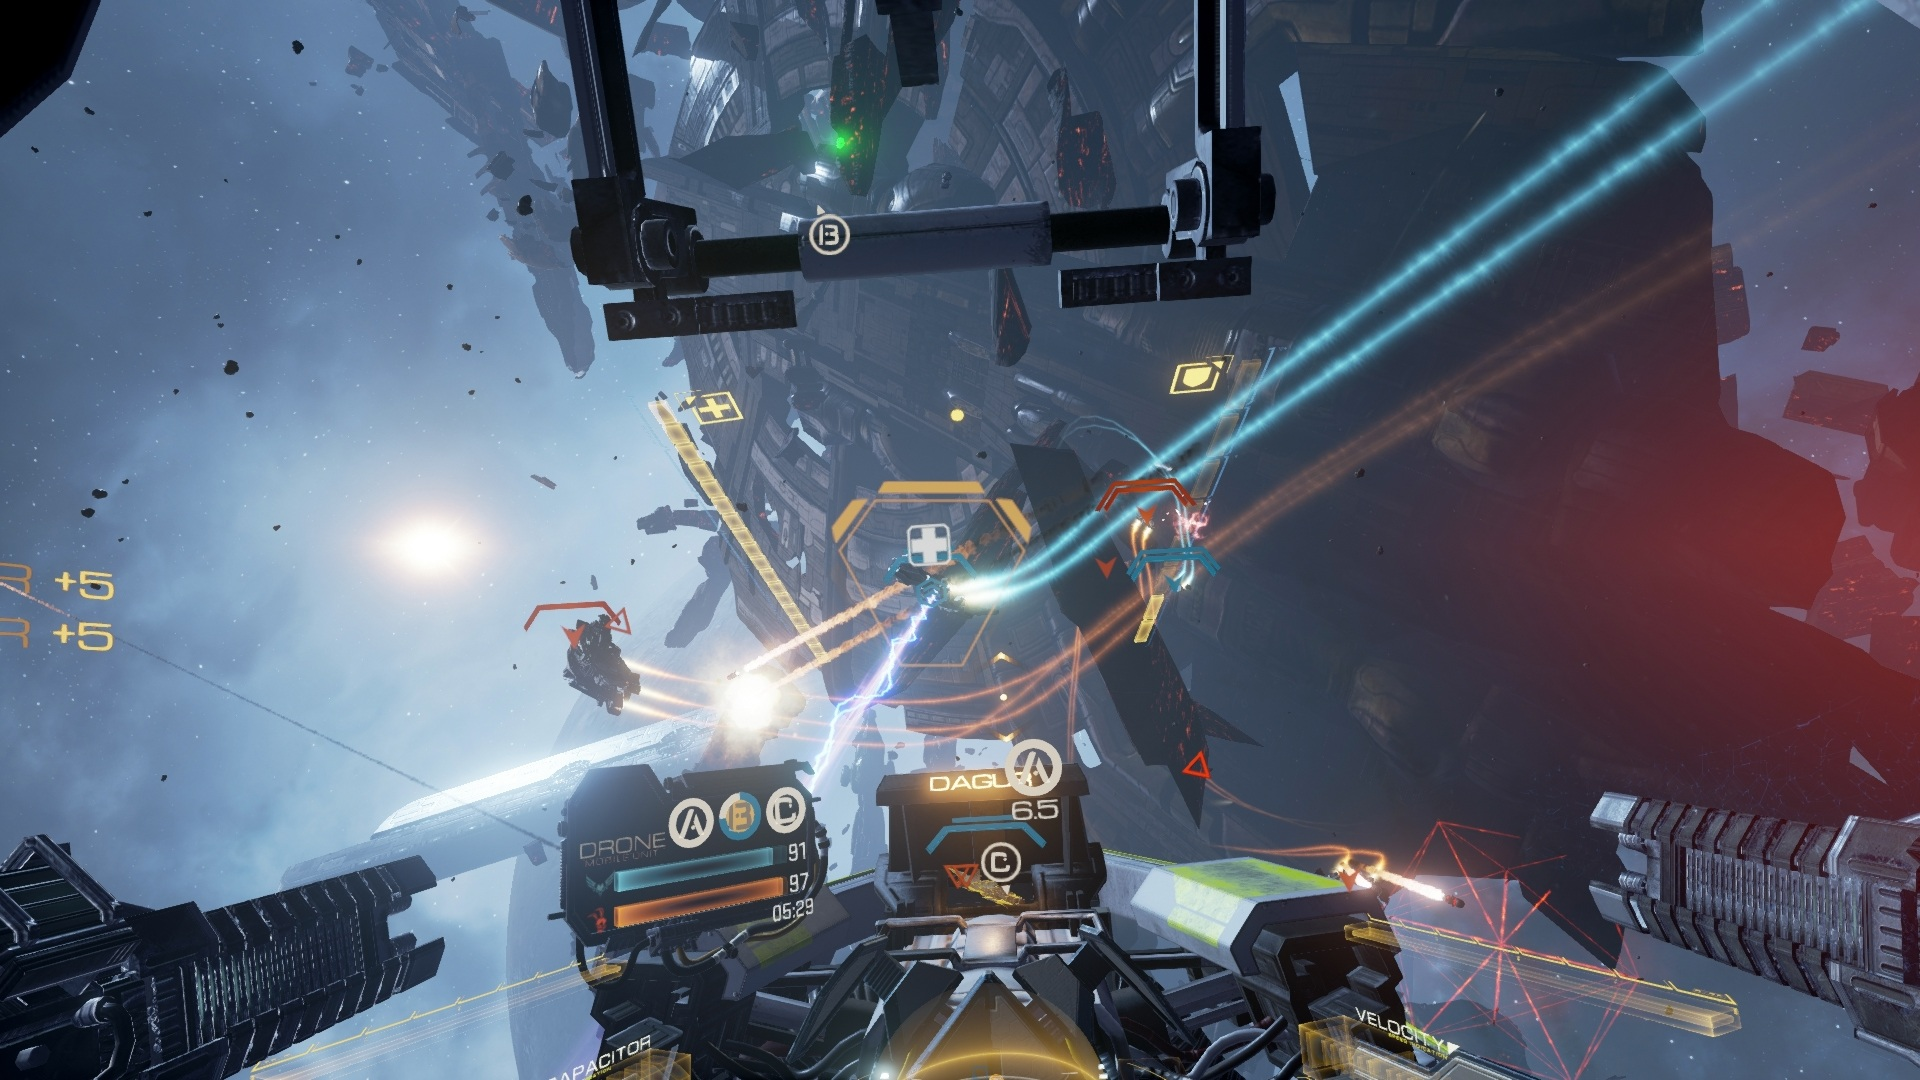 Dreadnought - The Developers Laid Off Work Force After Its Release